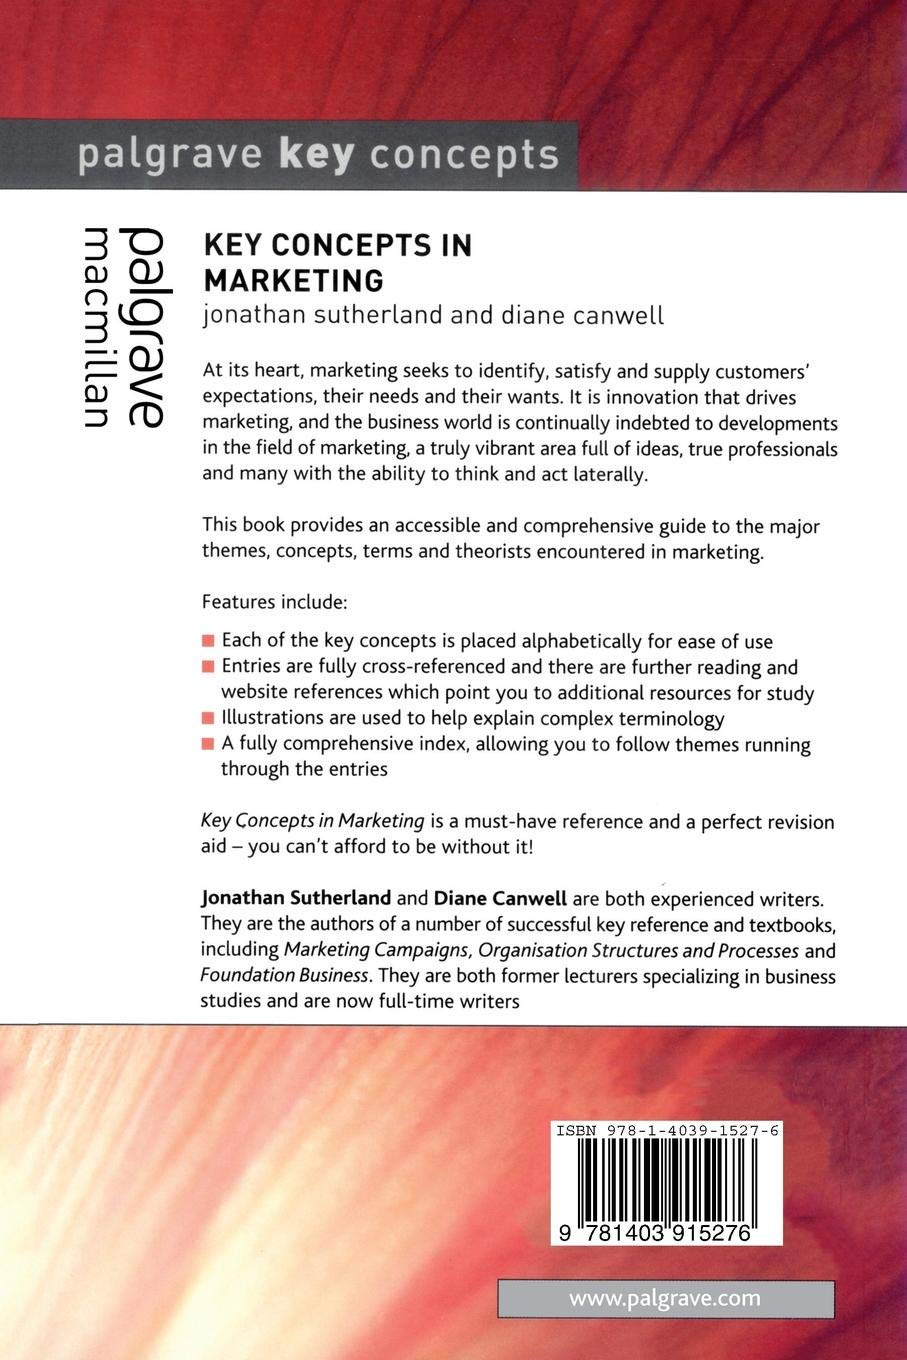 Key Concepts in Marketing (Palgrave Key Concepts)